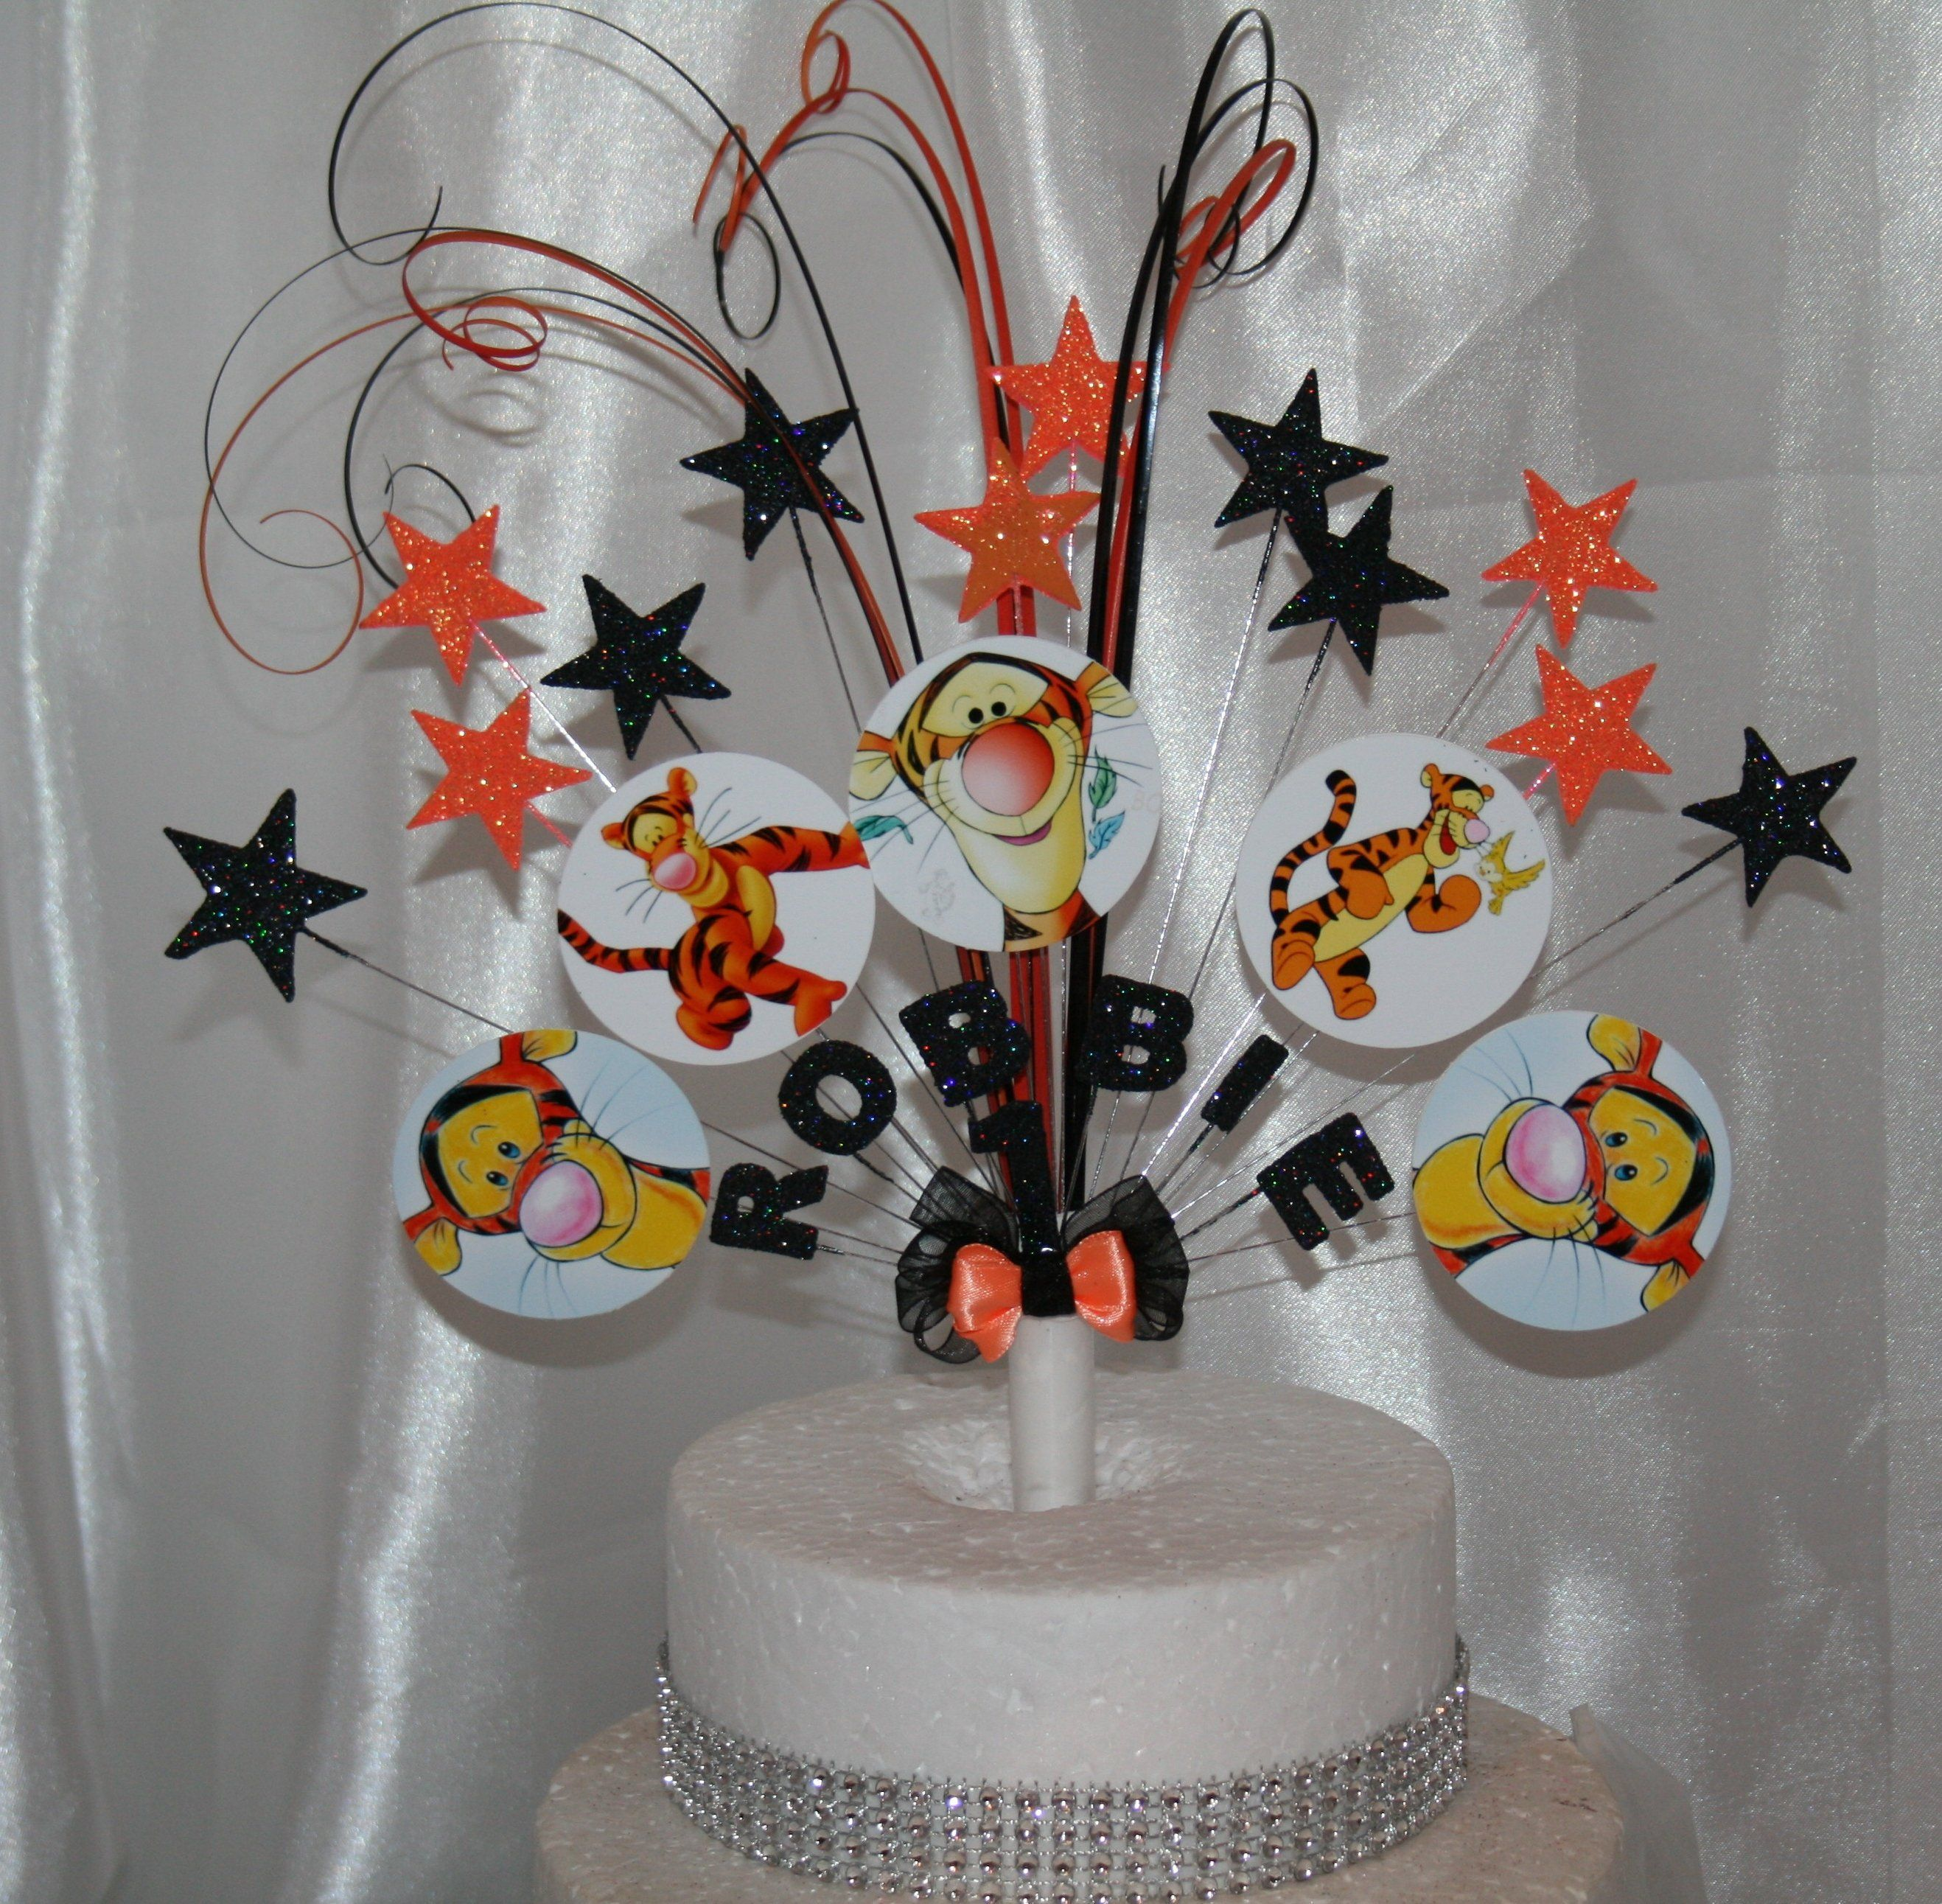 Tigger Glittered Cake Topper Spray Decoration Birthday 3rd 4th 5th 6th 7th 8th 9th 10th 11th 12th Any Age Colour Theme By Caketoppersprays On